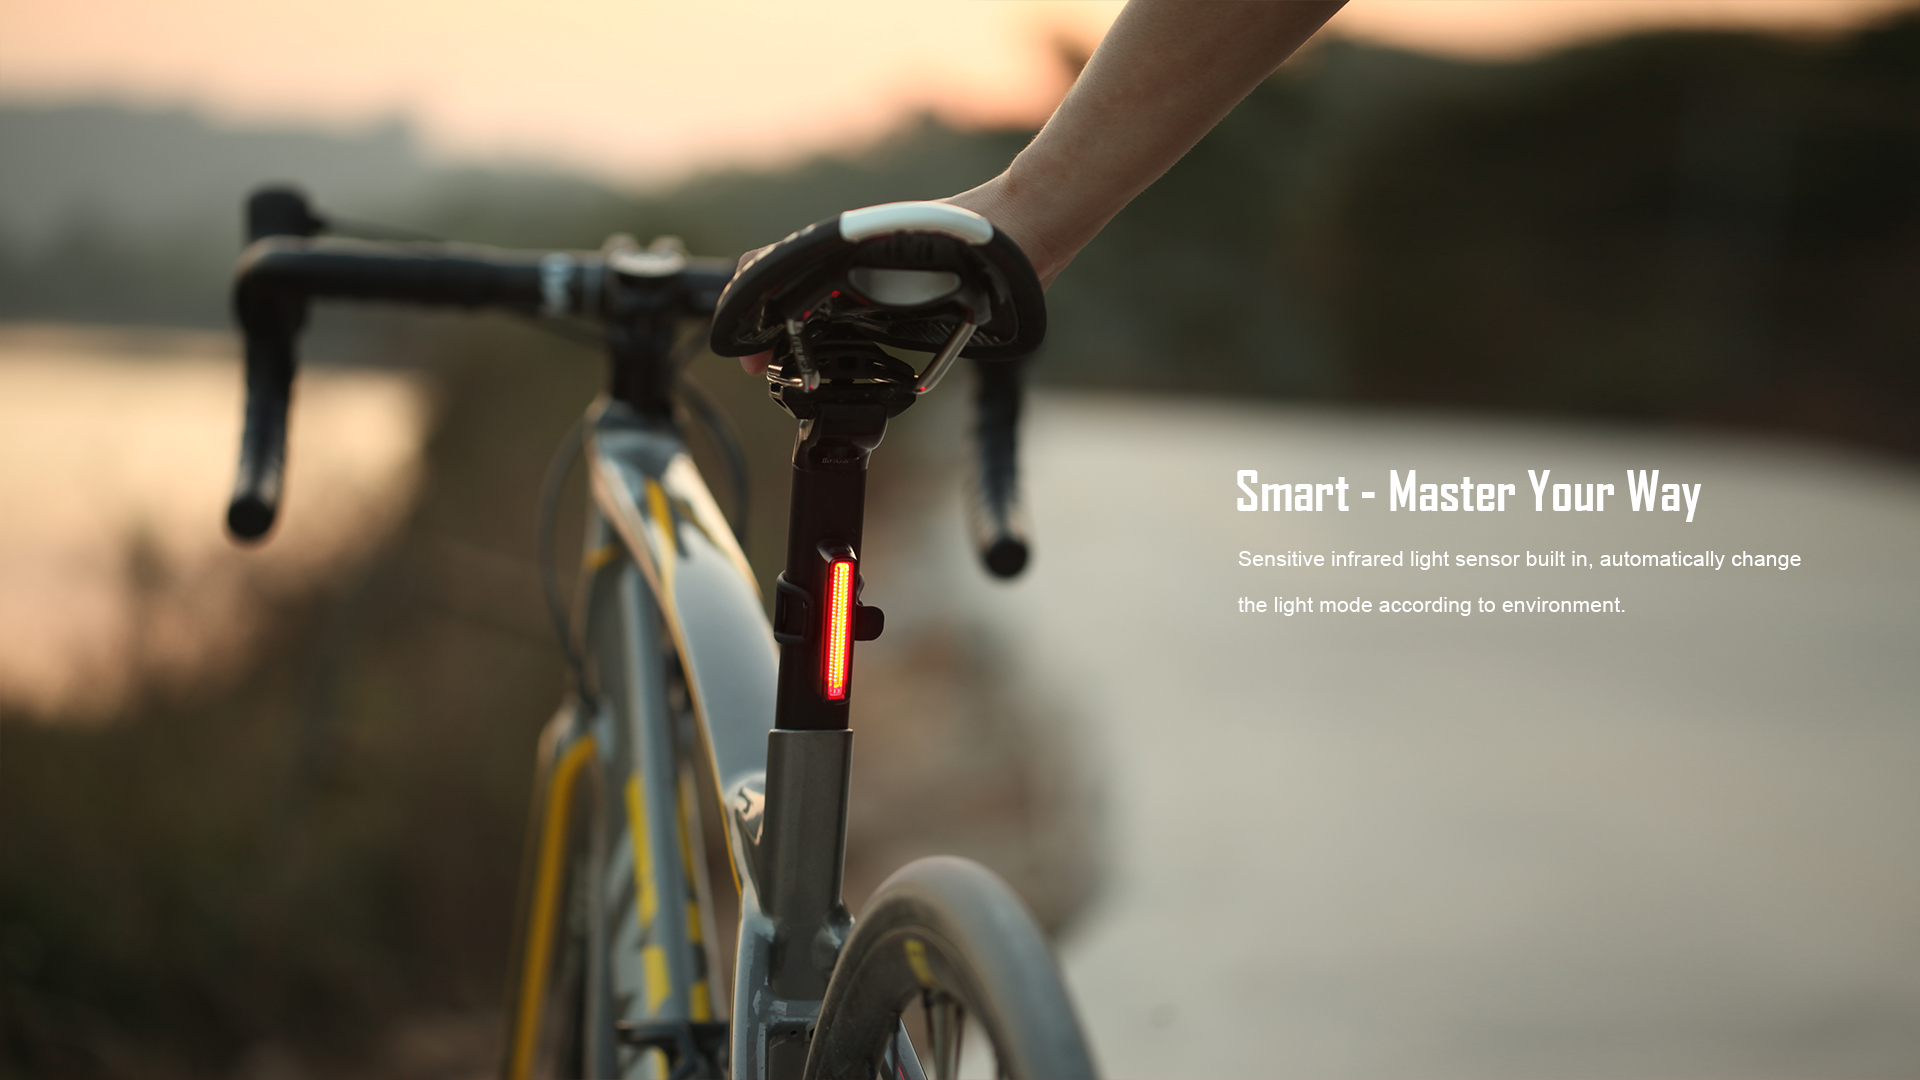 Master Your Way SEEME 30 TL LED Bicycle Tail Light